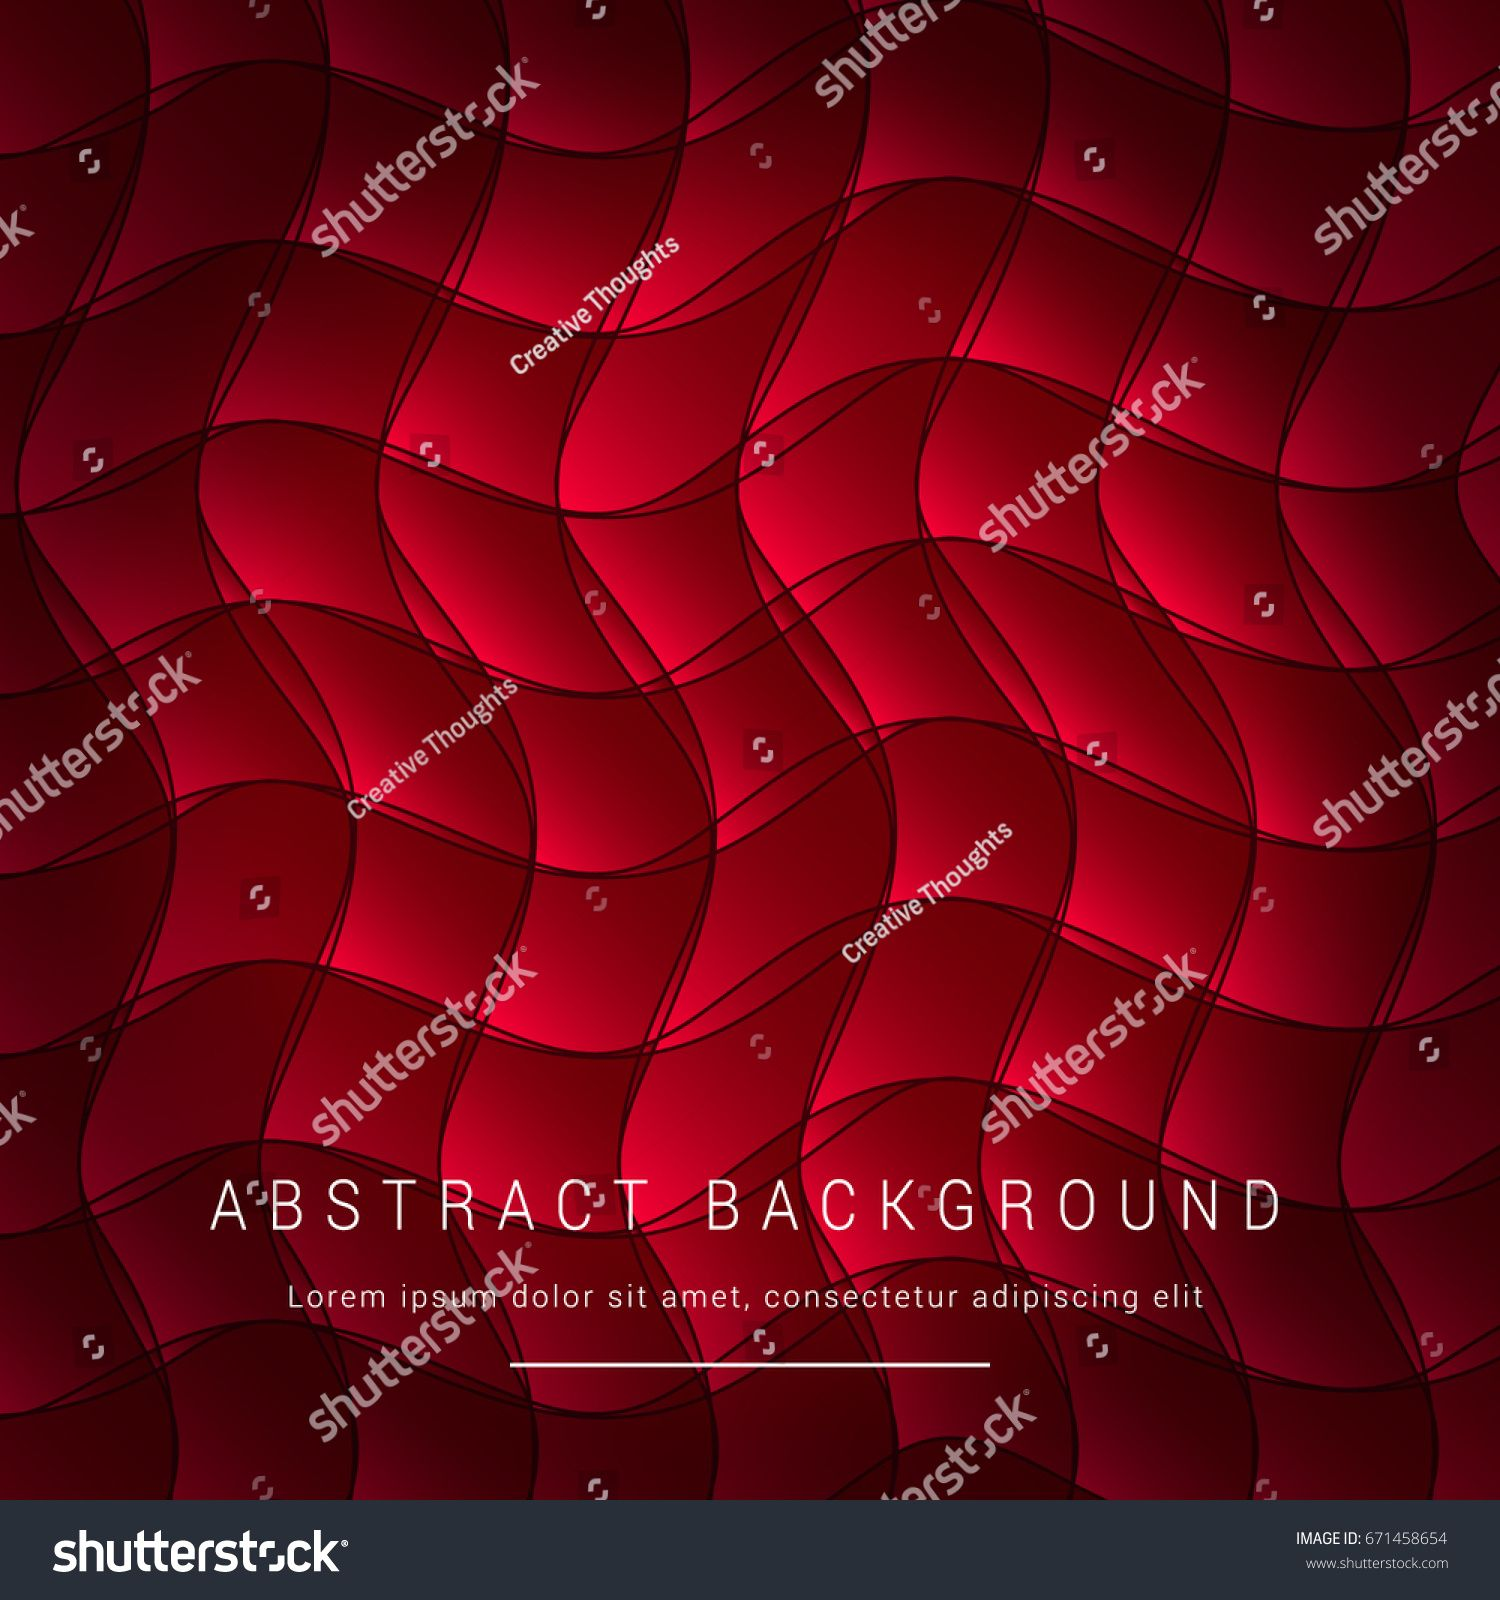 Abstract Background Vector Design Of Red And Black Wavy Geometric Pattern Wallpaper Sponsored Ornamental Vector Geometric Pattern Wallpaper Vector Pattern